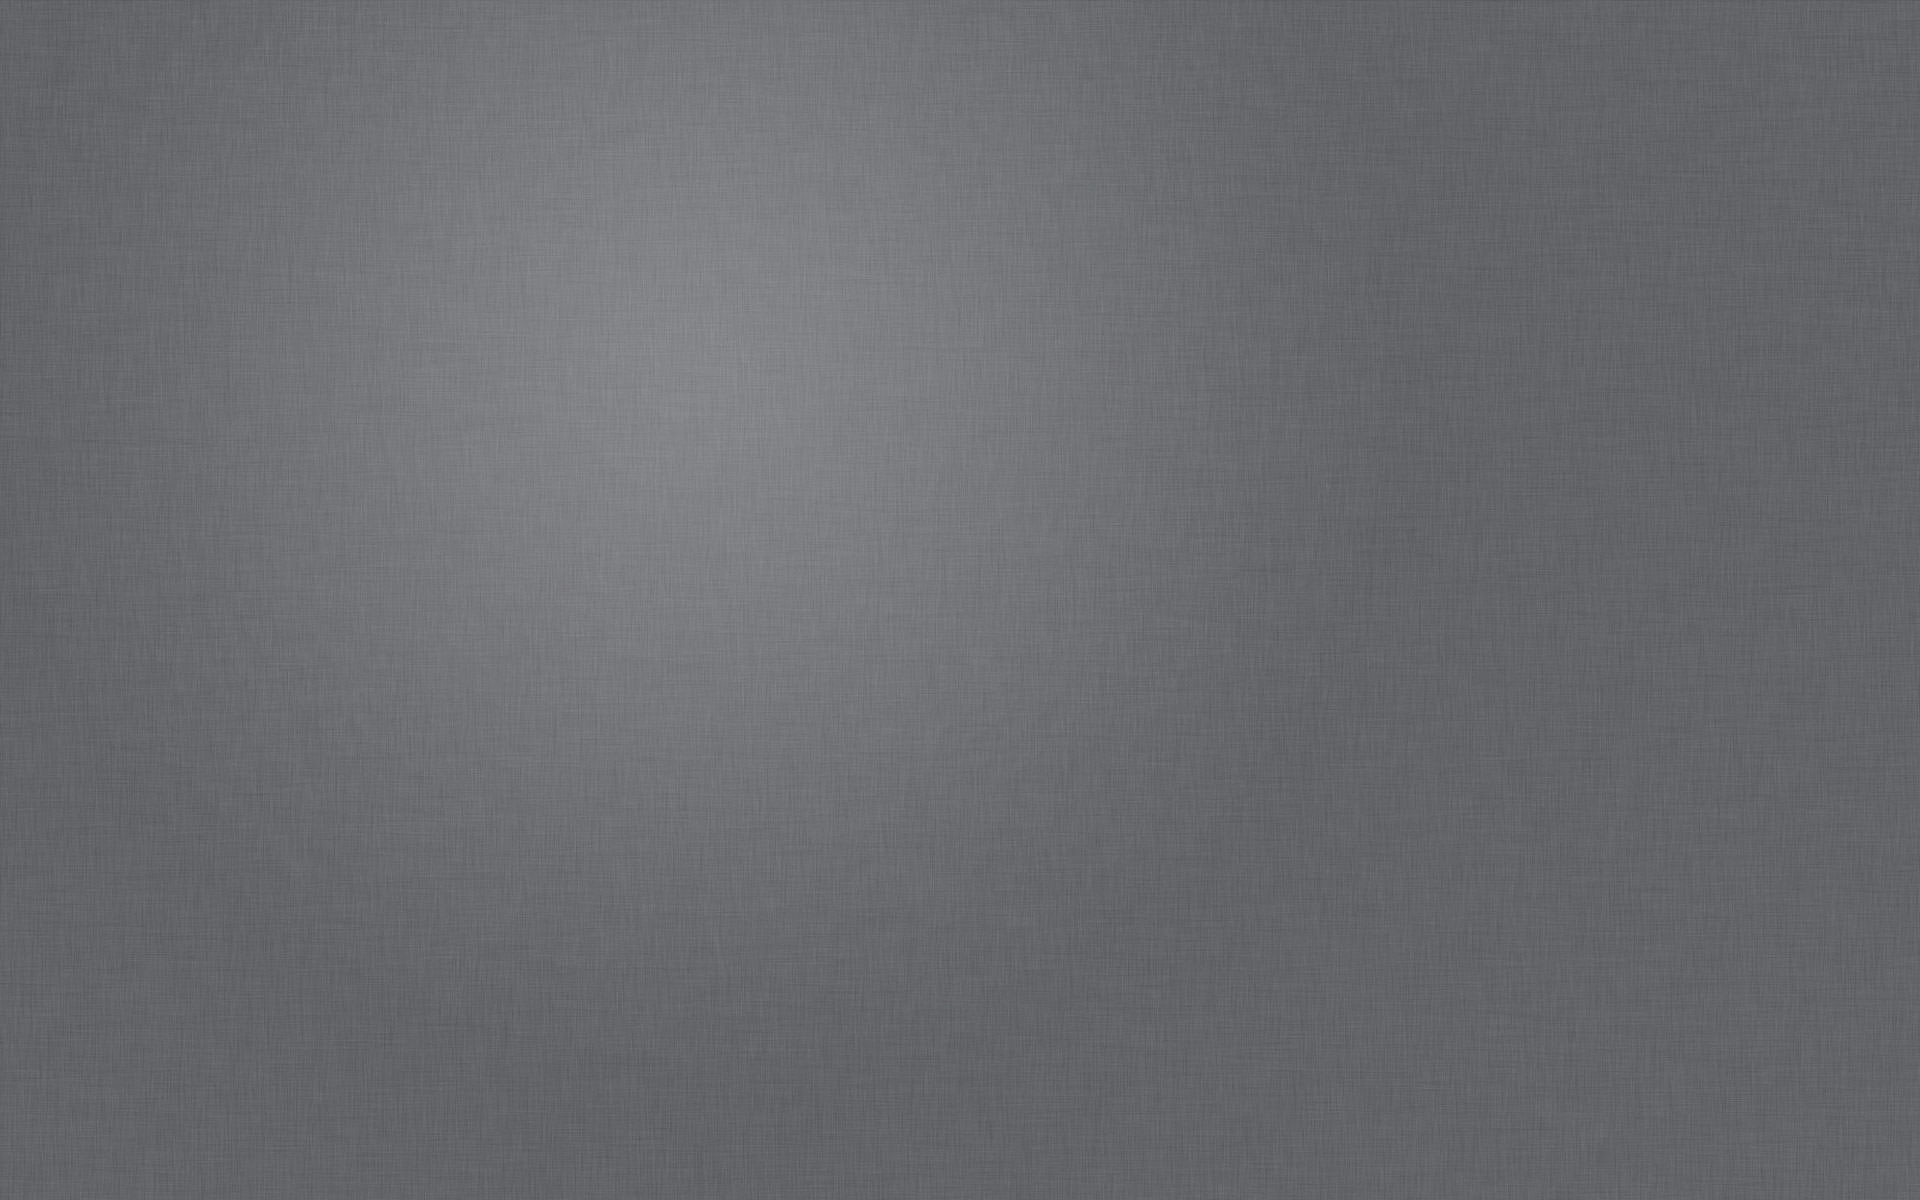 Black grey and white design wallpaper joy studio design for Black and grey wallpaper designs